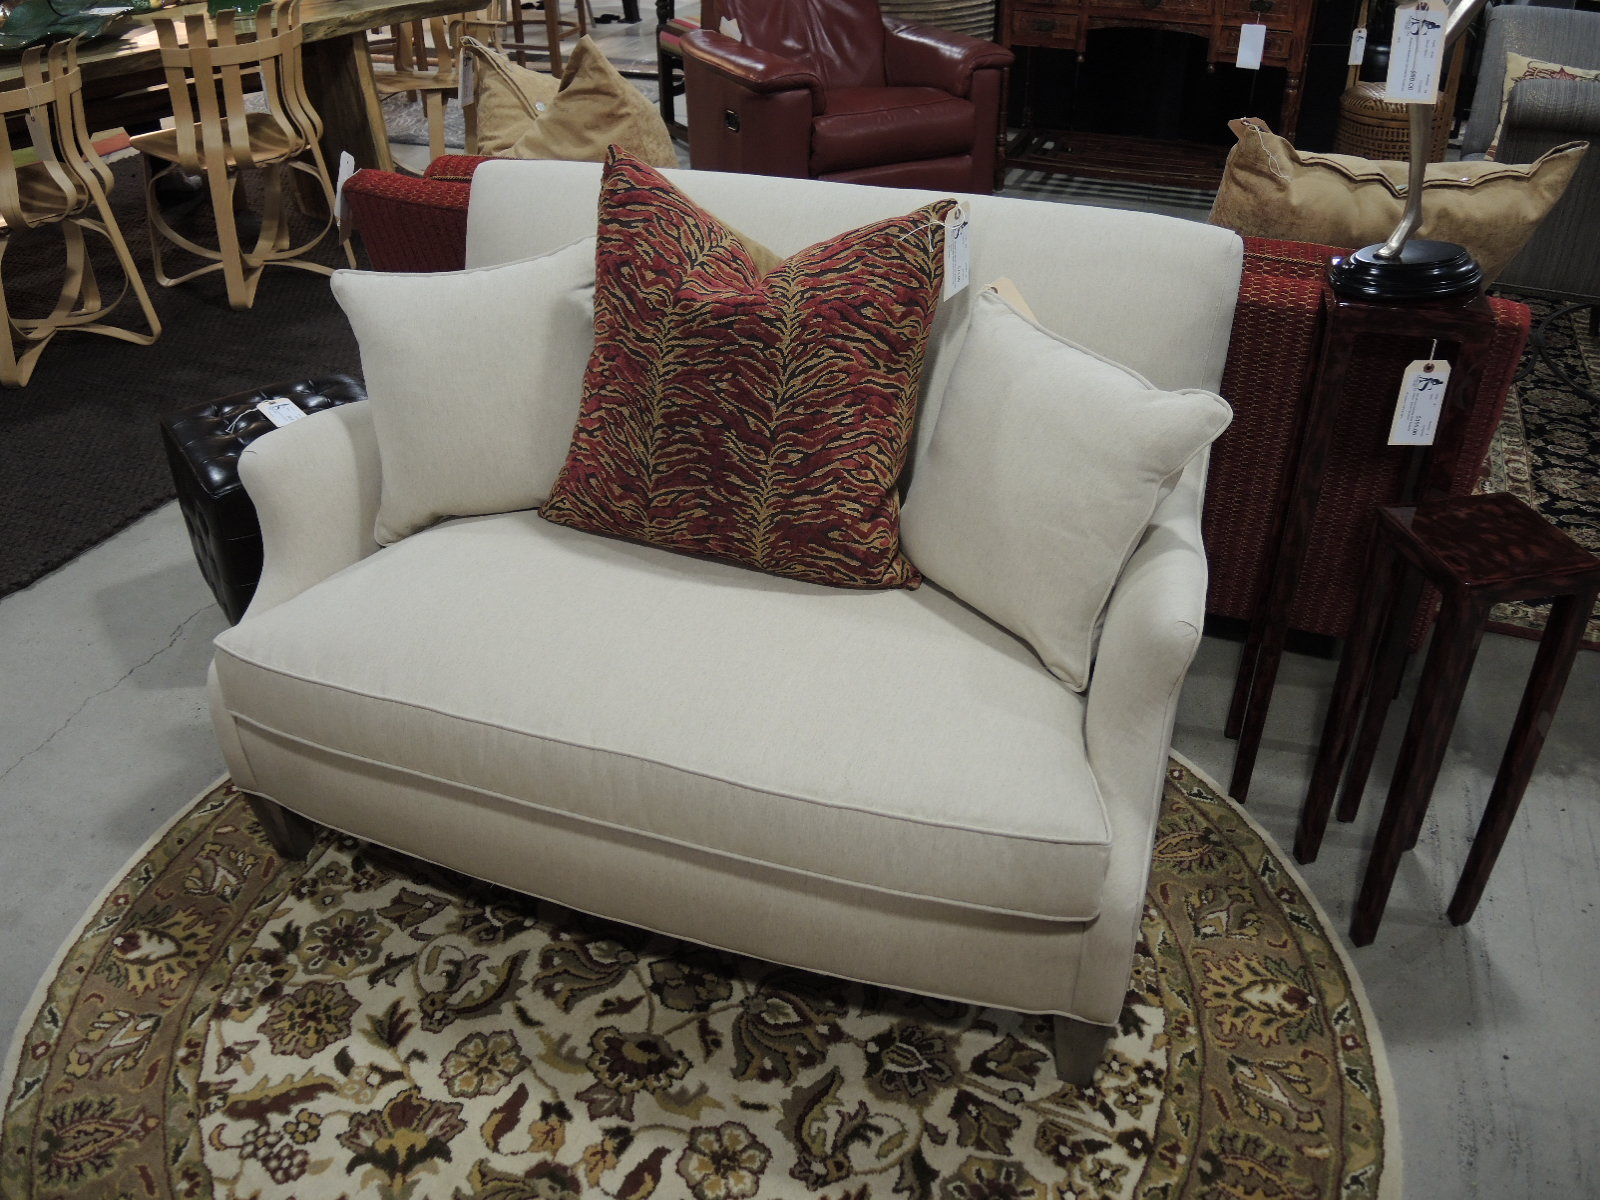 ballard designs seams to fit home brand new delivered to the showroom wrapped and crated we have this pristine hudson settee from ballard designs with down wrapped foam cushions